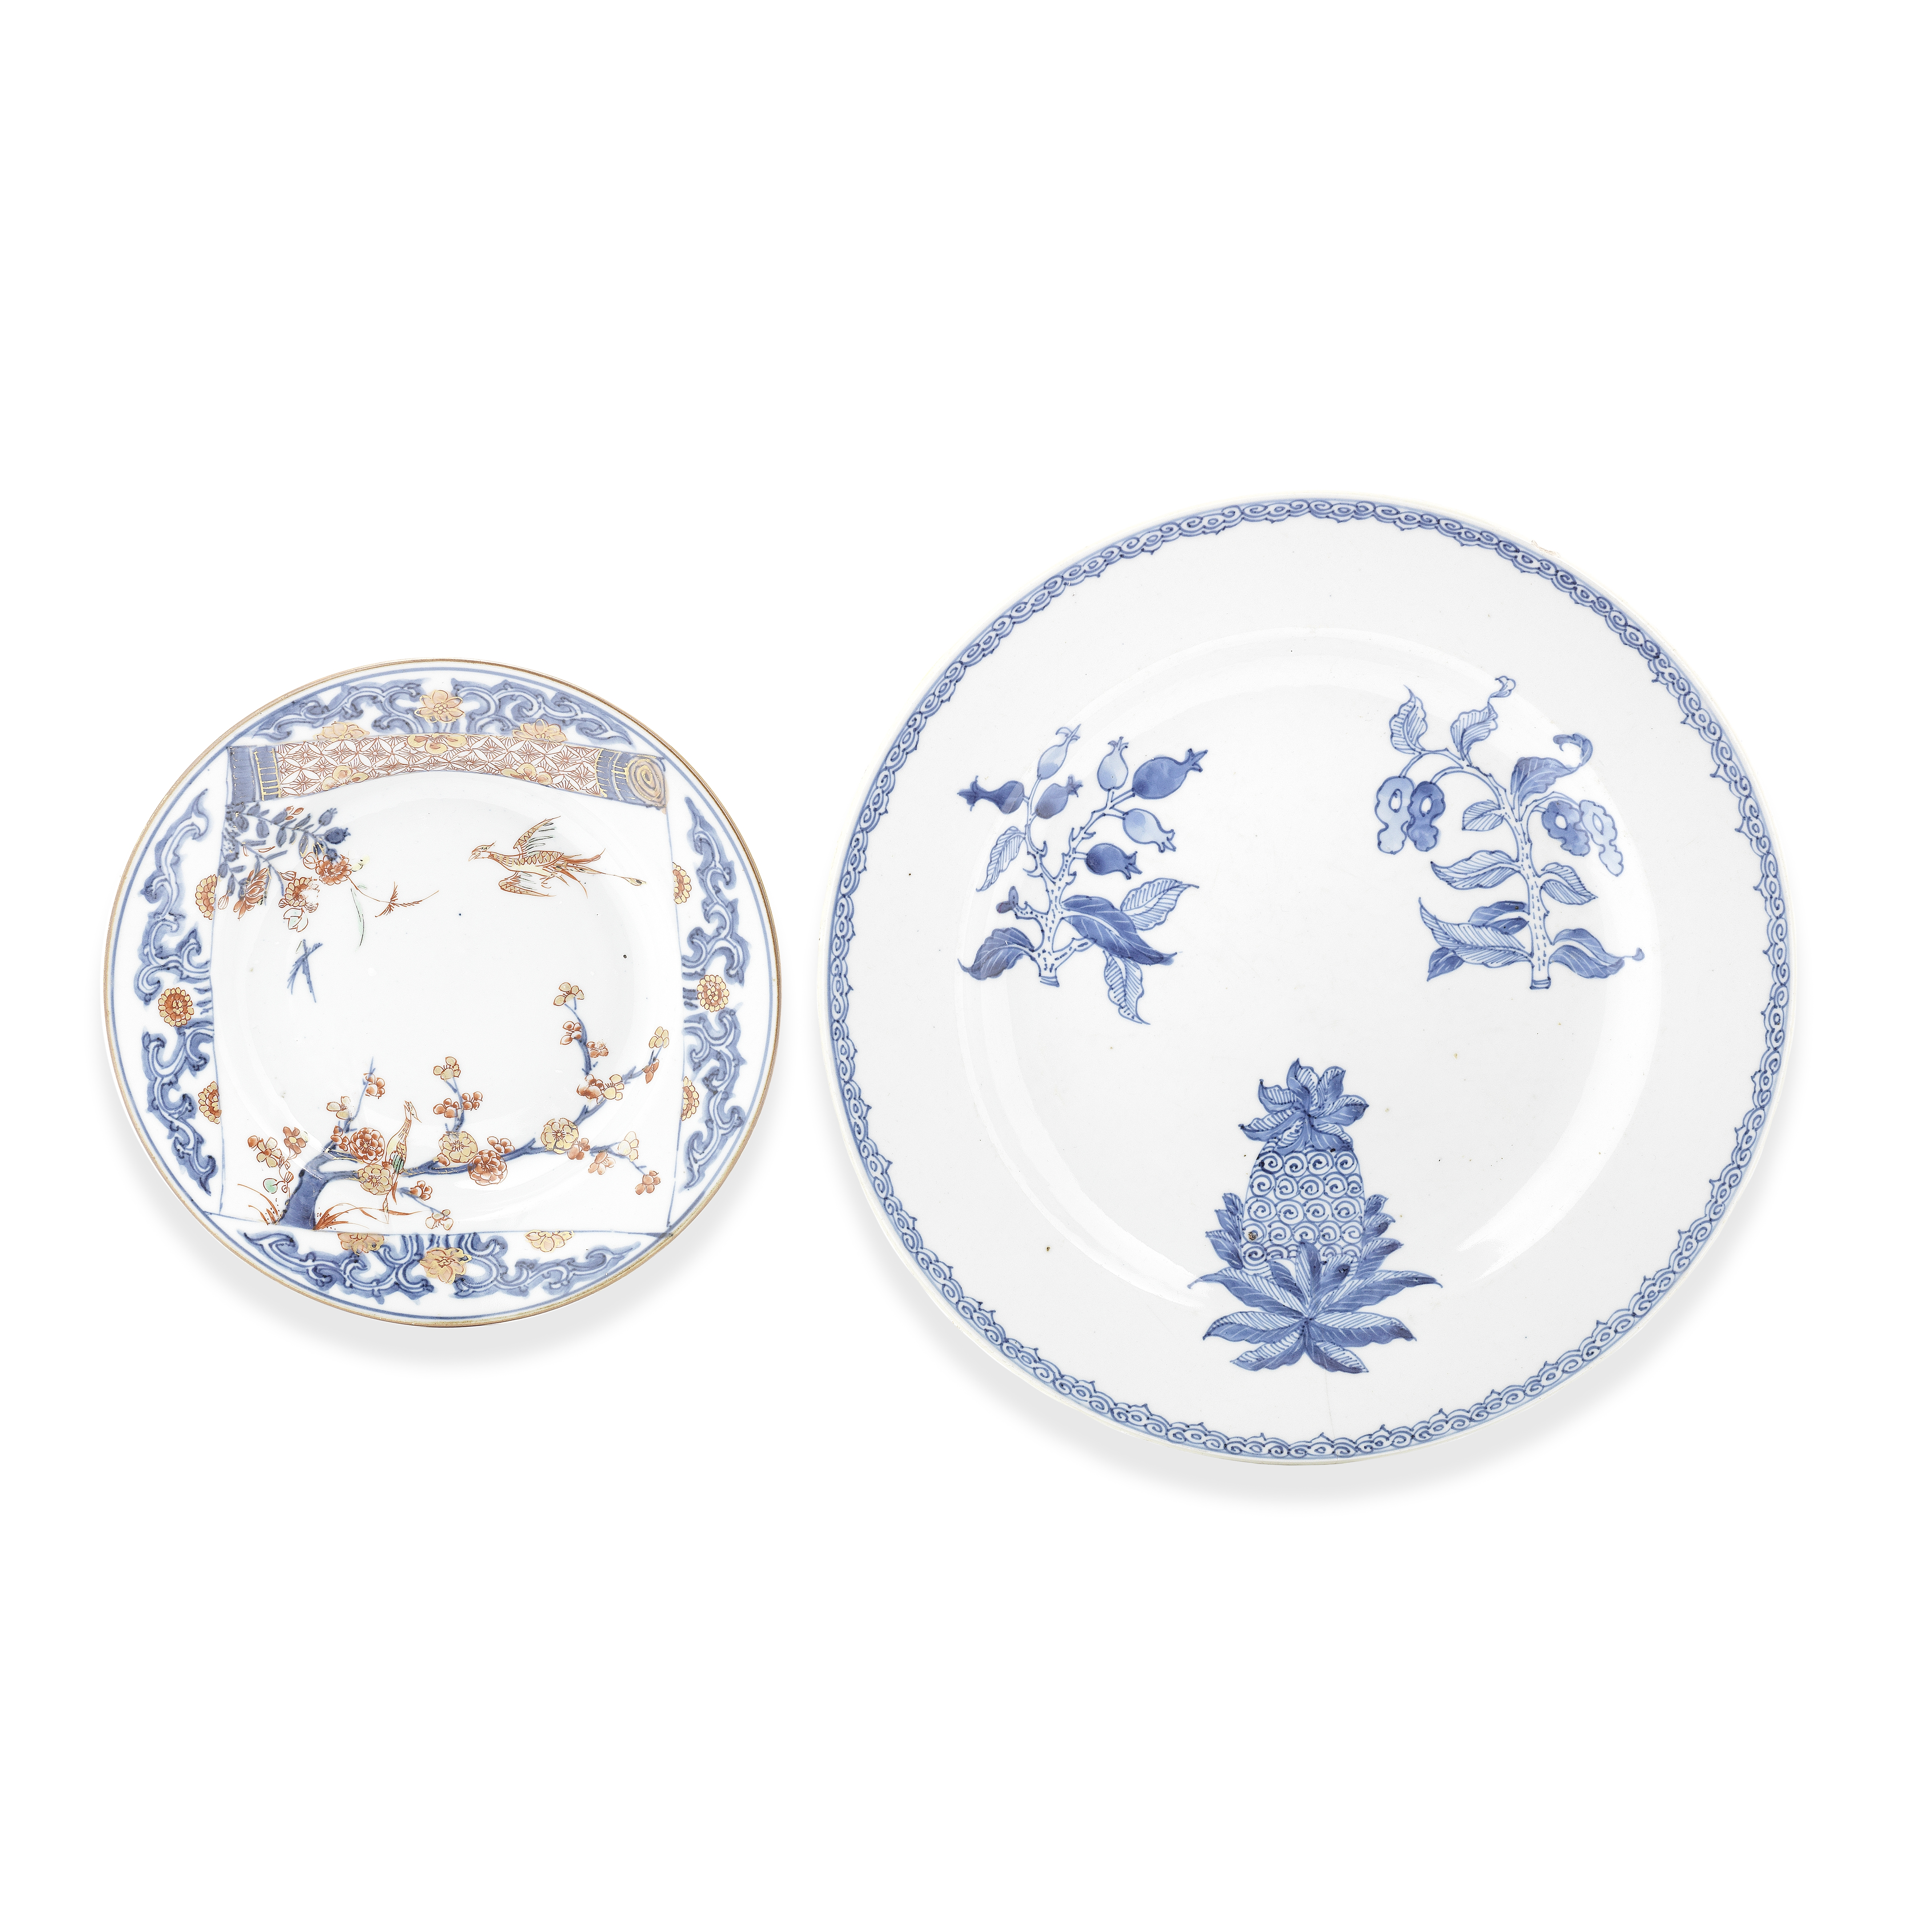 A VERTE-IMARI DISH AND AN UNUSUAL BLUE AND WHITE 'BOTANICAL' CHARGER 18th century (2)